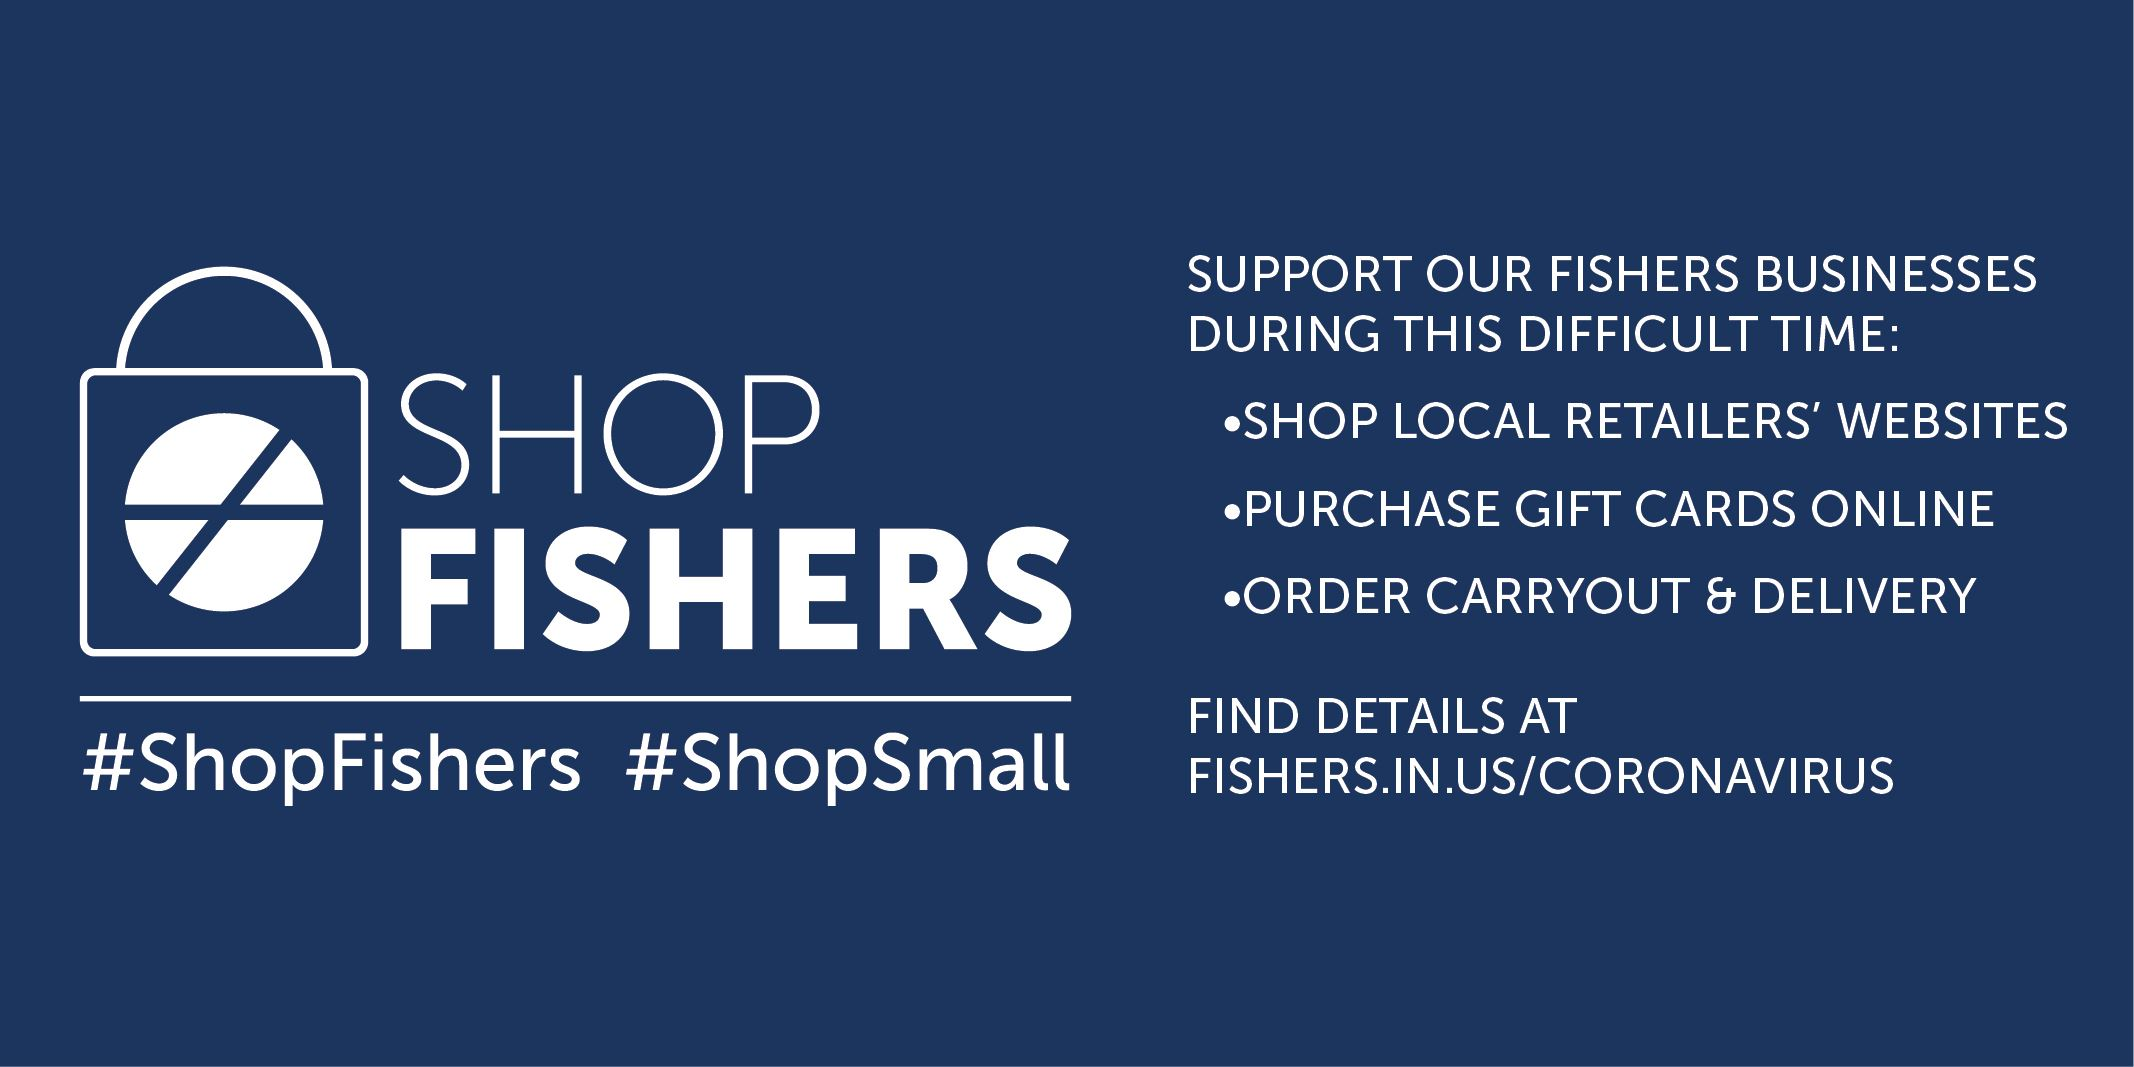 shop fishers | #shopfishers #shoplocal | support our fishers businesses during this difficult time: